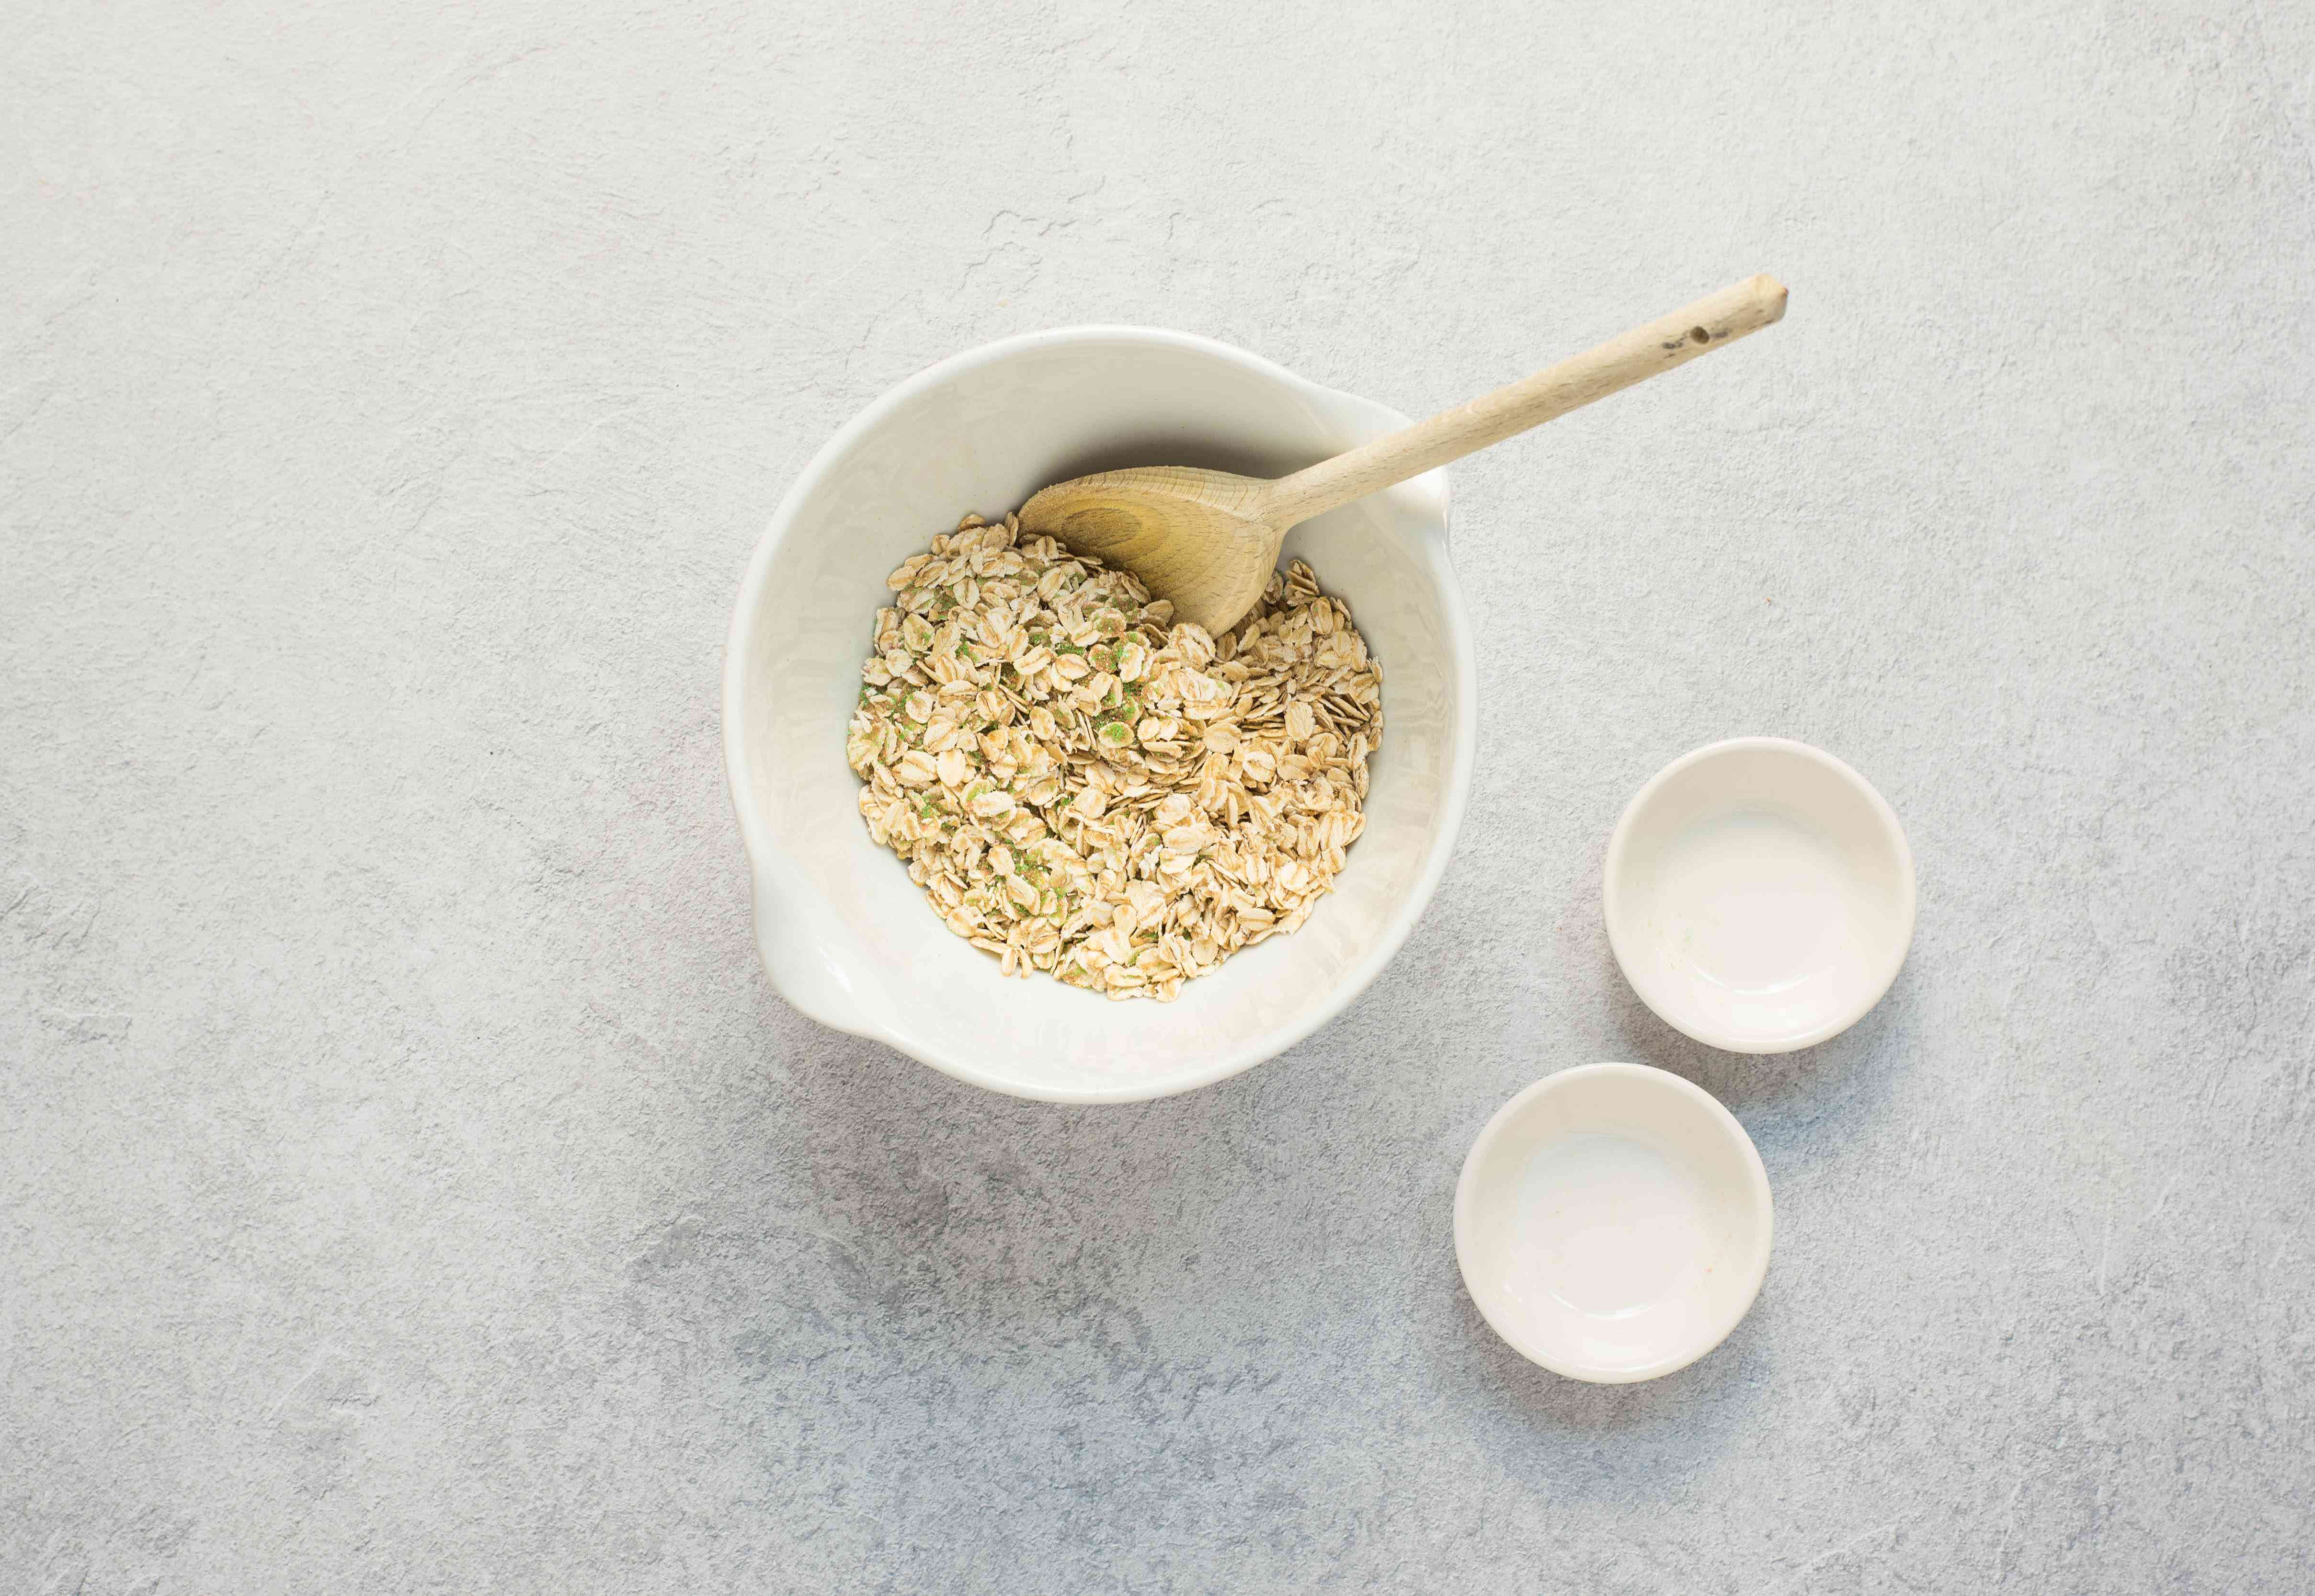 Mixed together rolled oats